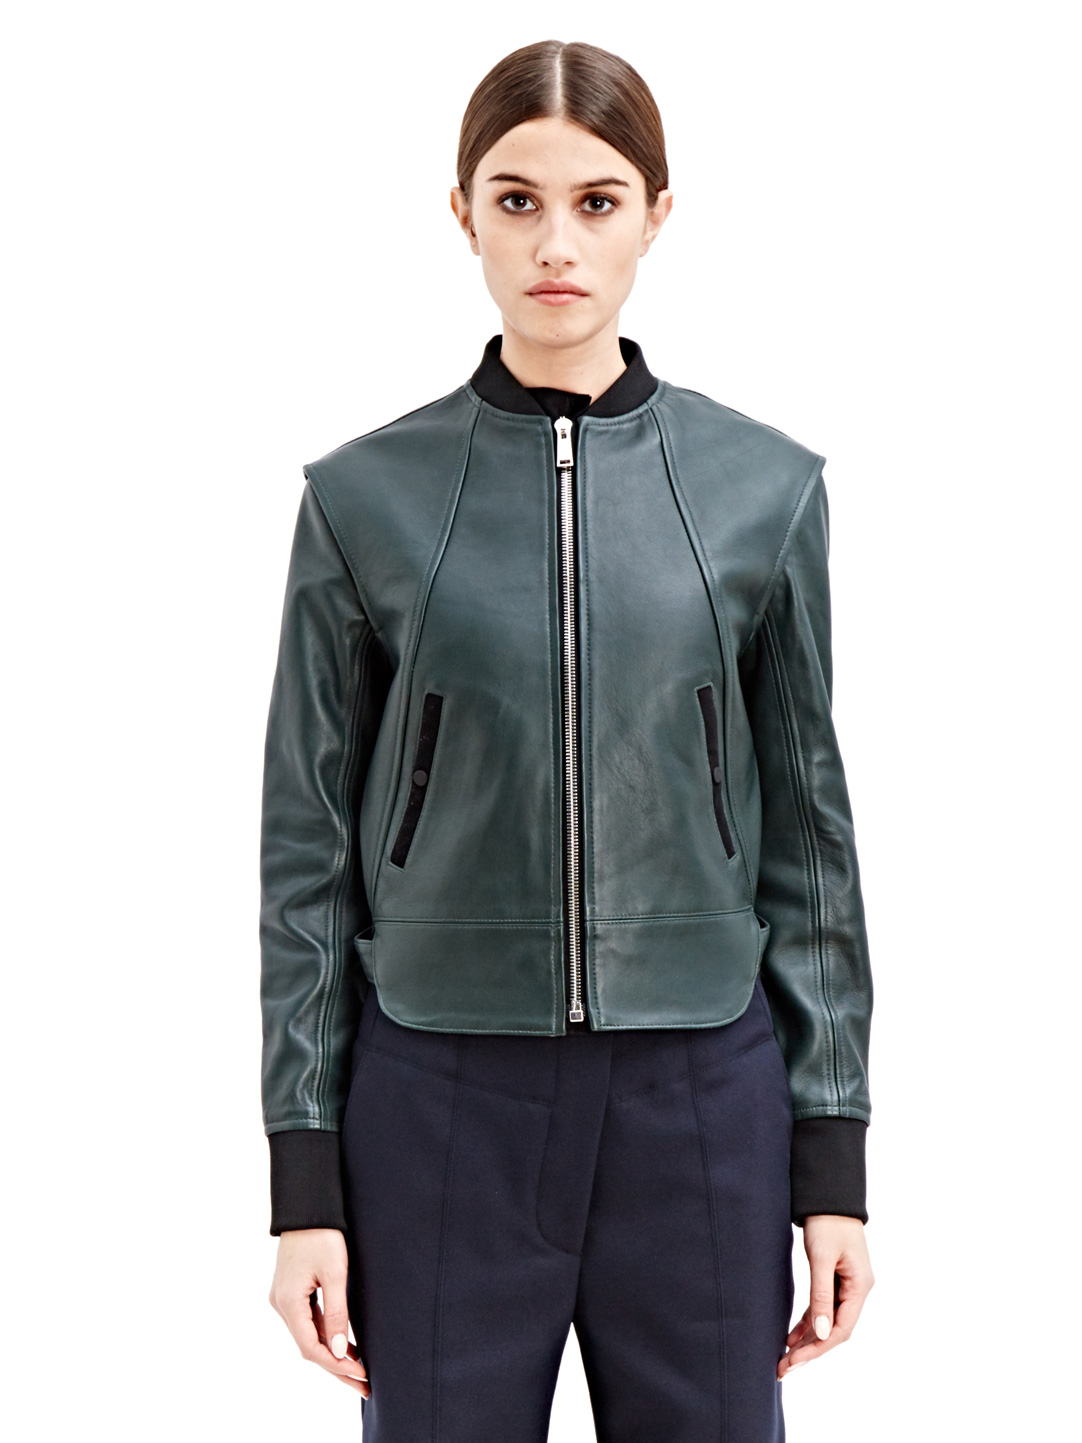 Paco rabanne Womens Leather Bomber Jacket in Green | Lyst